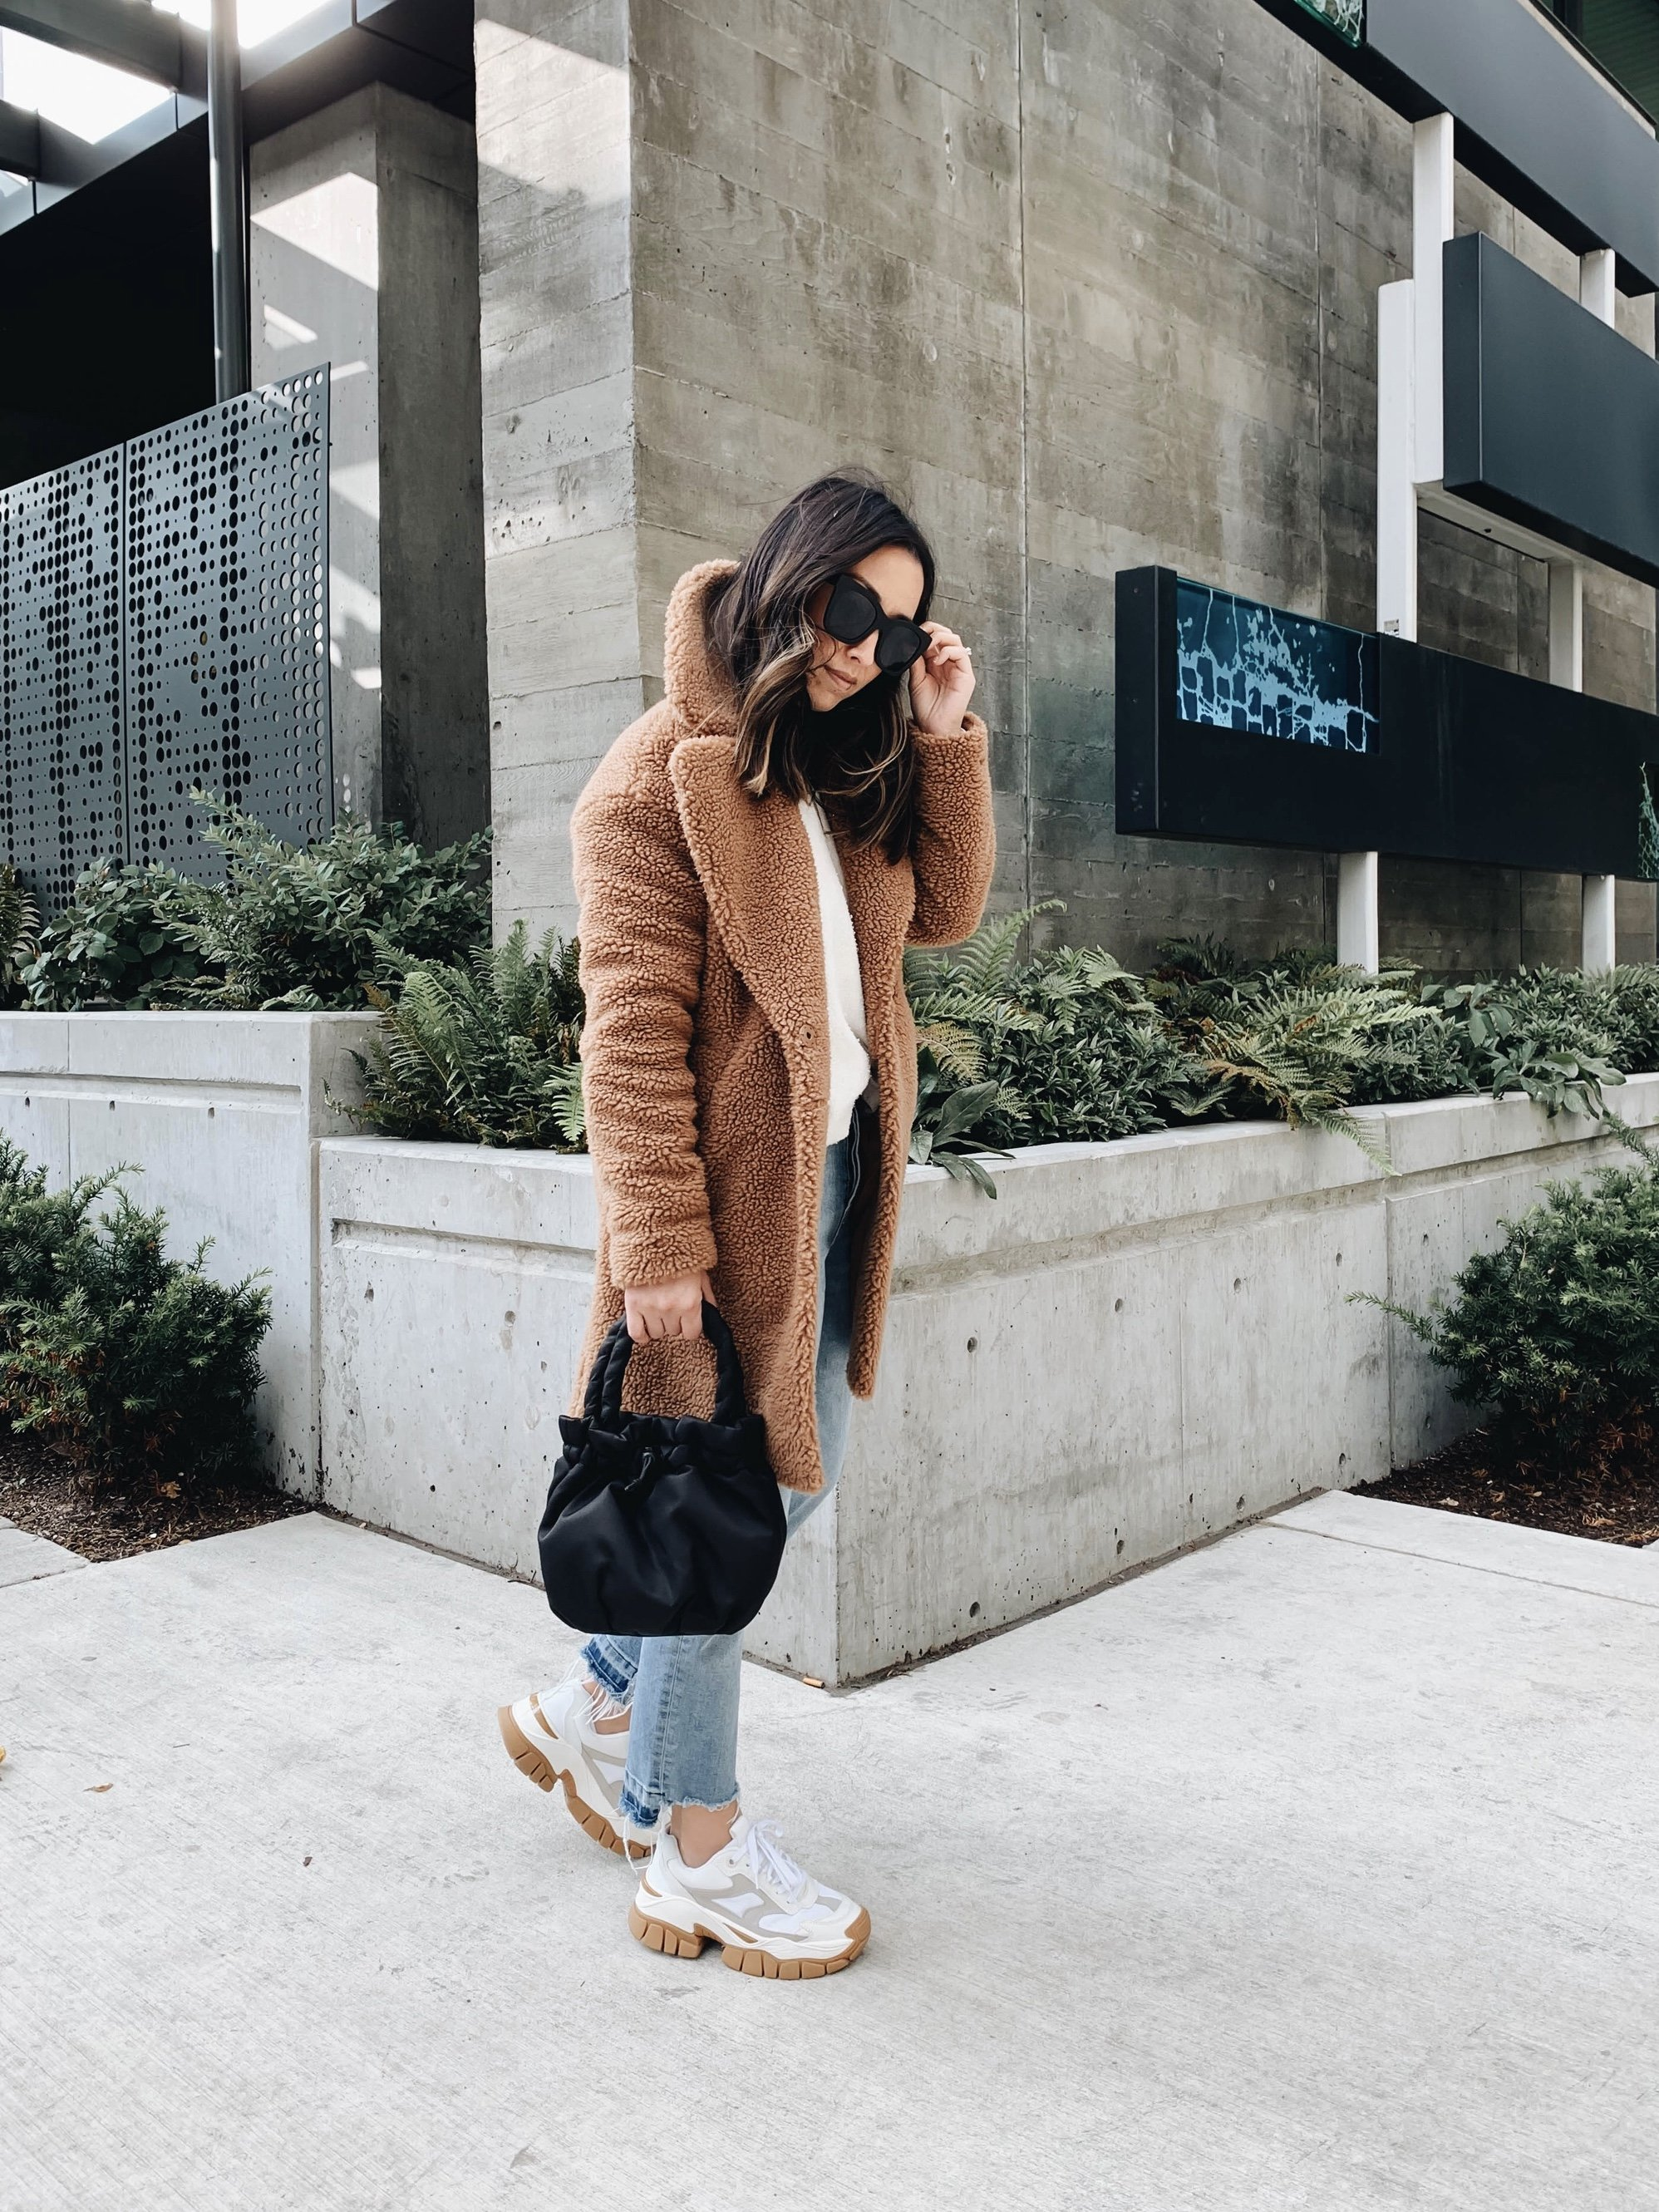 Abercrombie & Fitch sherpa coat